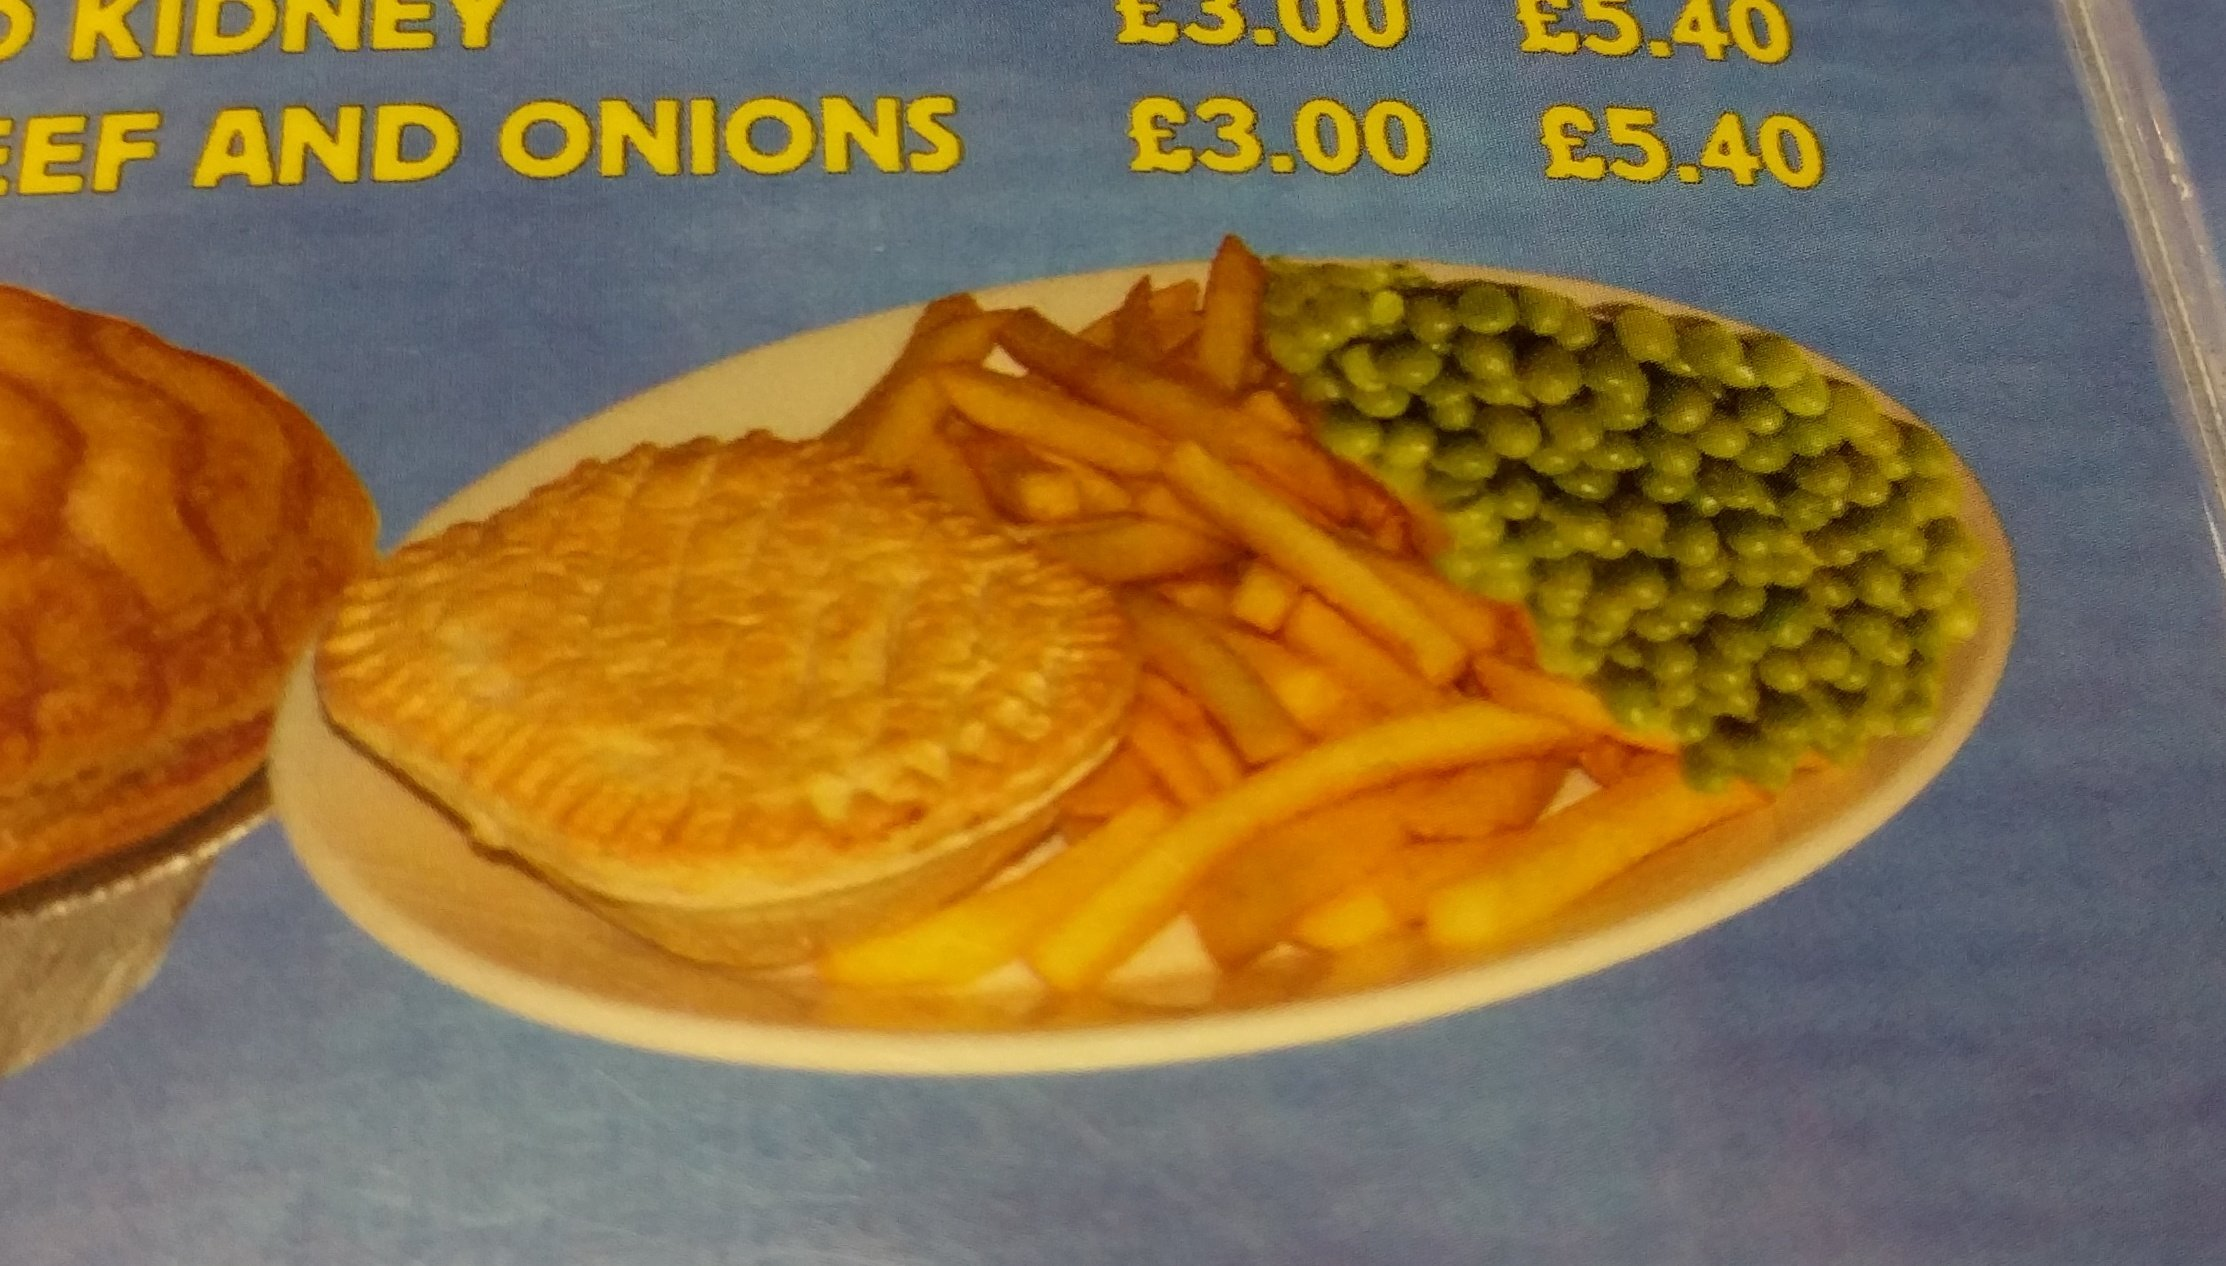 Why are the peas upside down?